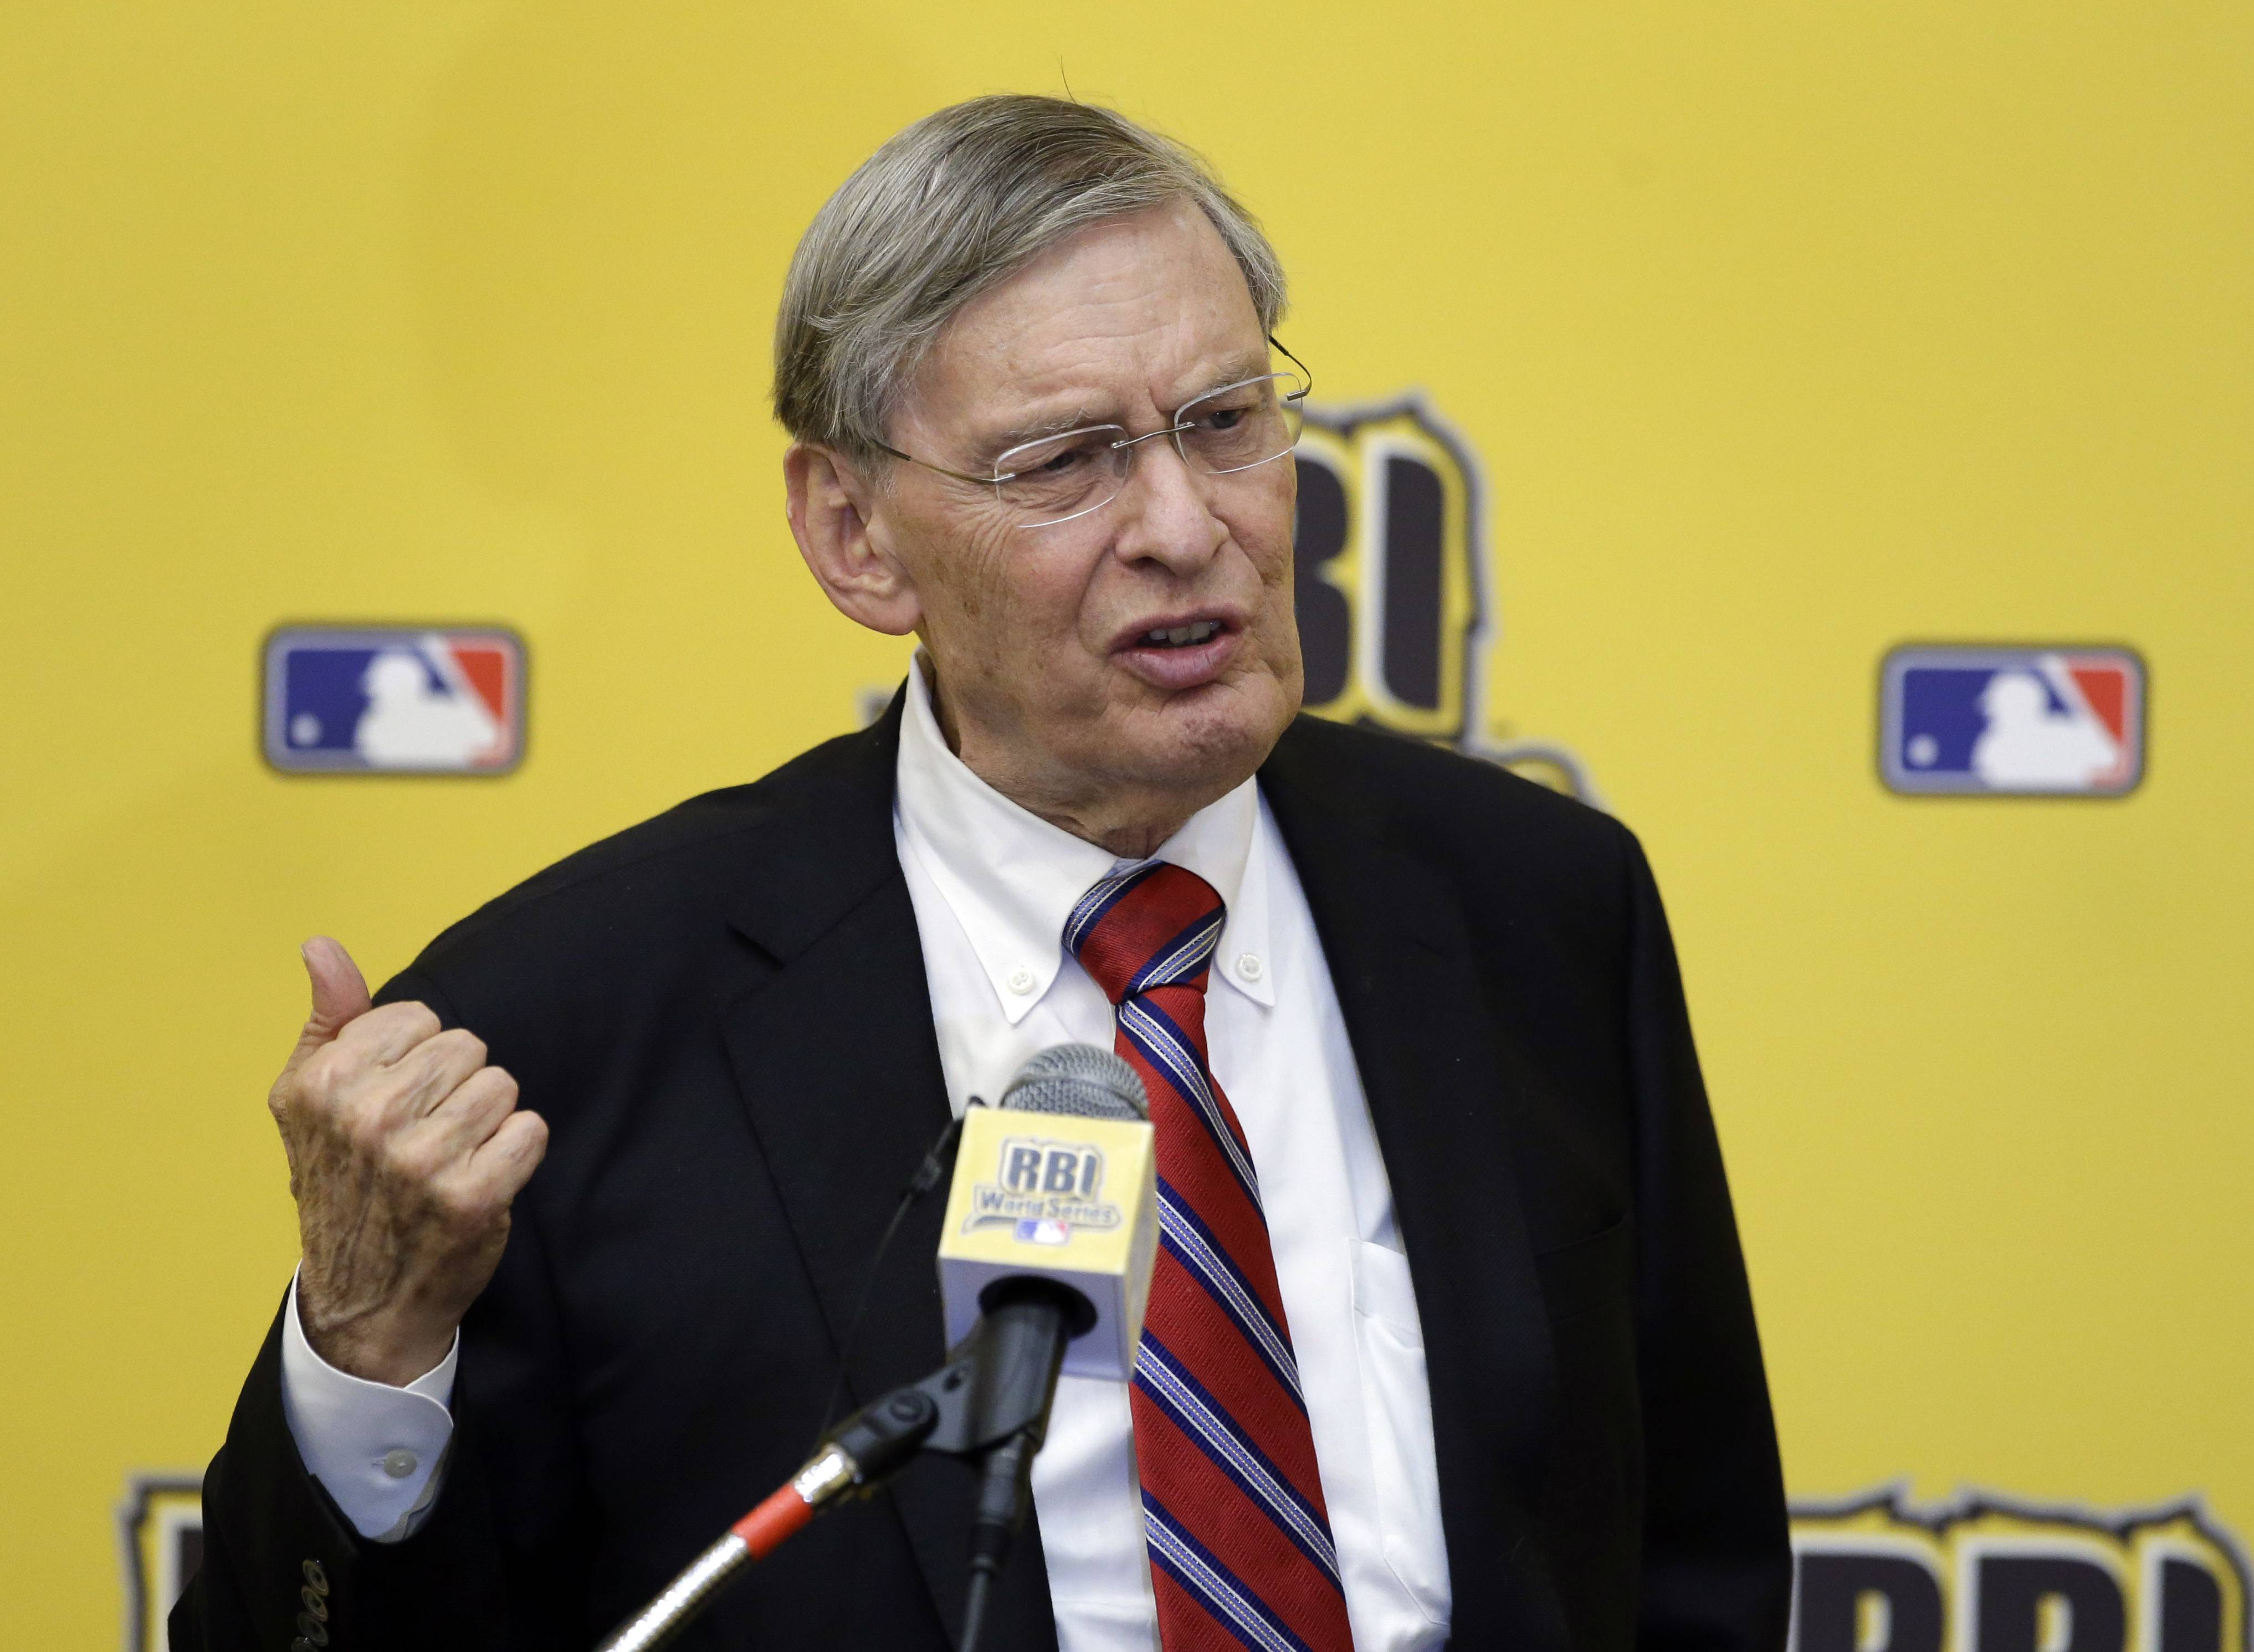 Baseball Commissioner Bud Selig speaks at the 2014 Reviving Baseball in Inner Cities World Series luncheon, Wednesday, Aug. 6, 2014, in Grapevine, Texas.